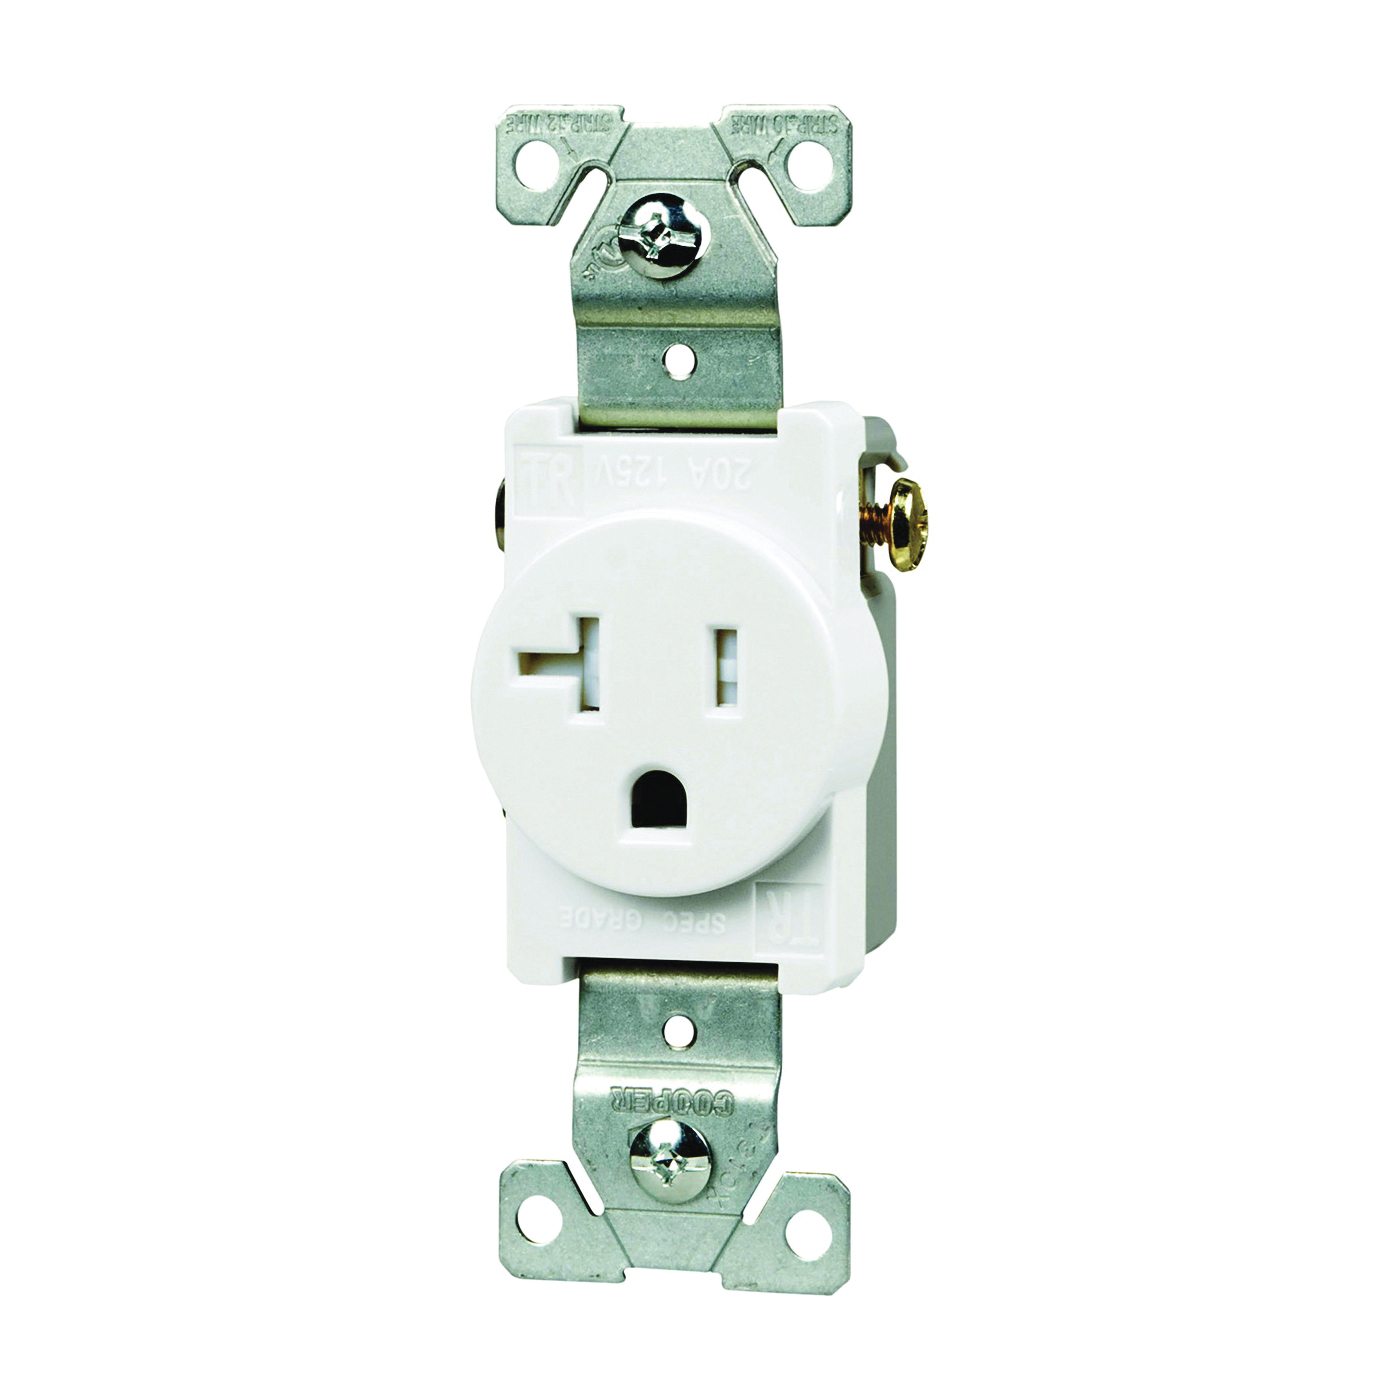 Picture of Eaton Wiring Devices TR1877W-BXSP Single Receptacle, 2-Pole, 125 V, 20 A, Side Wiring, NEMA 5-20R, White